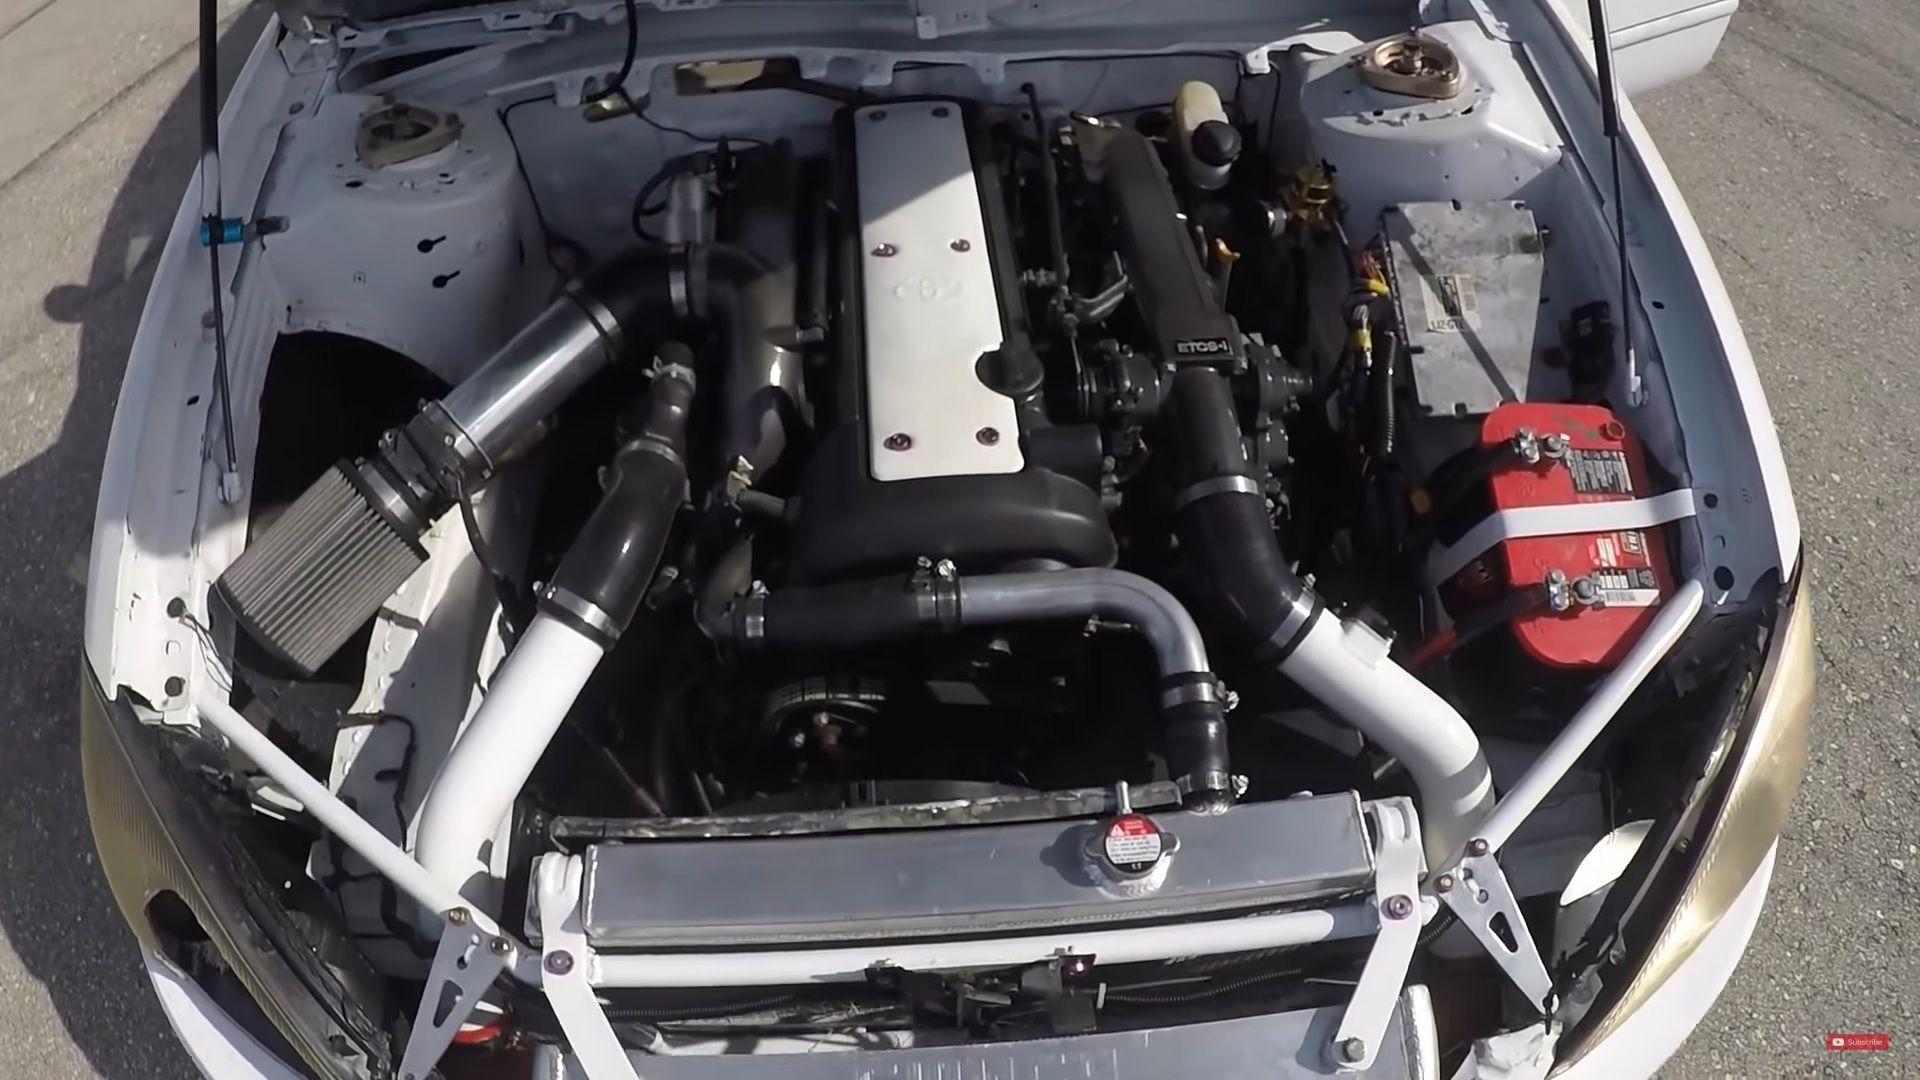 Someone Seriously Crammed A Toyota Supra 1jz Into A Freaking Ford